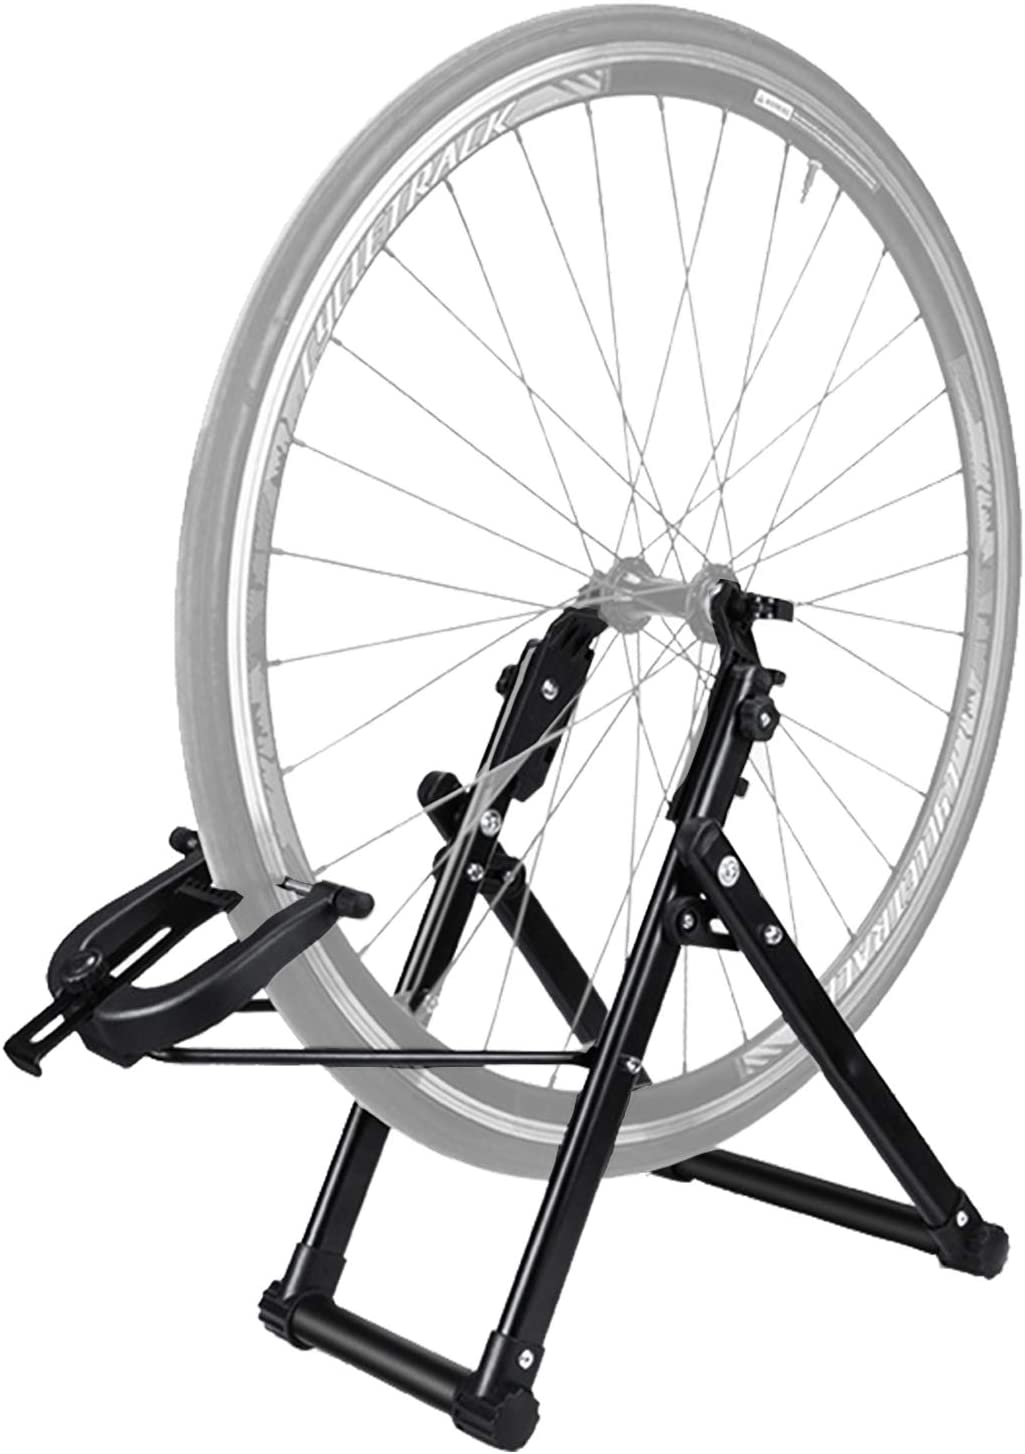 """Clothink Bike Wheel Truing Stand Bicycle Wheel Maintenance Home Mechanic Truing Stand Fits 16"""" - 29"""" 700C Wheels : Sports & Outdoors"""